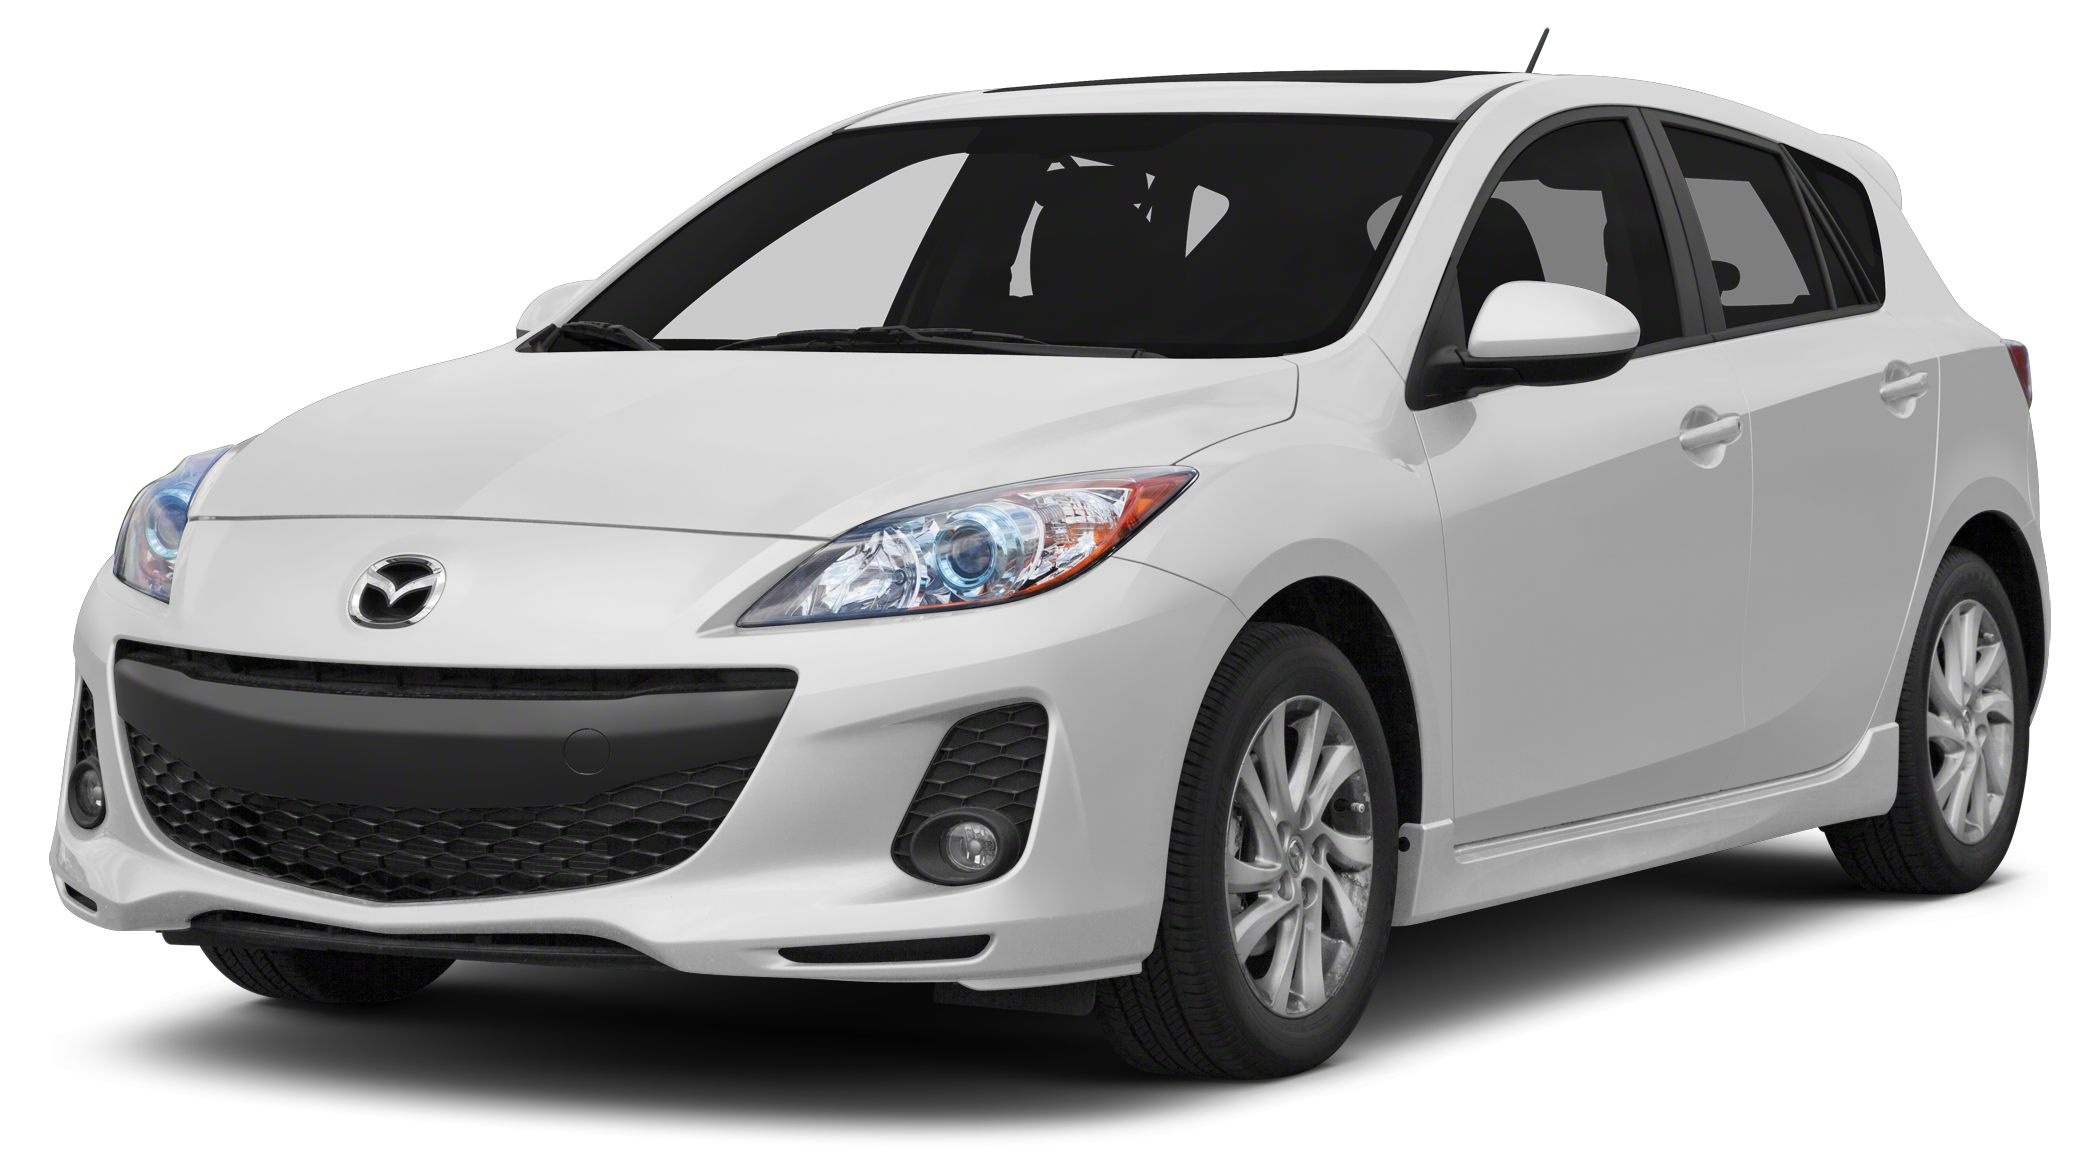 2012 Mazda MAZDA3 i Touring OUR PRICESYoure probably wondering why our prices are so much lower